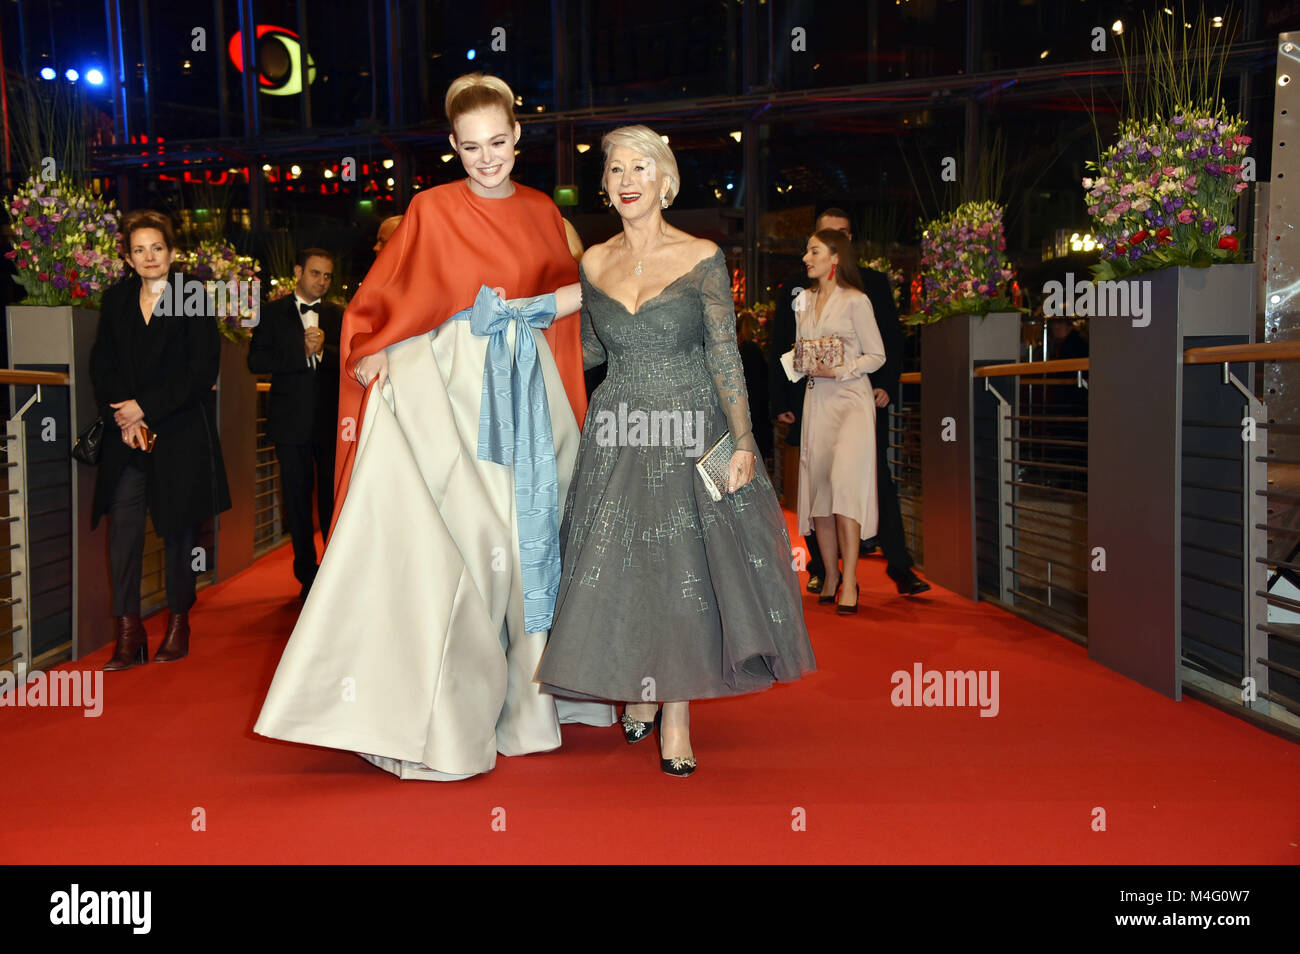 Berlin, Germany. 15th Feb, 2018. Elle Fanning and Helen Mirren attending the 'Isle Of Dogs' premiere at - Stock Image